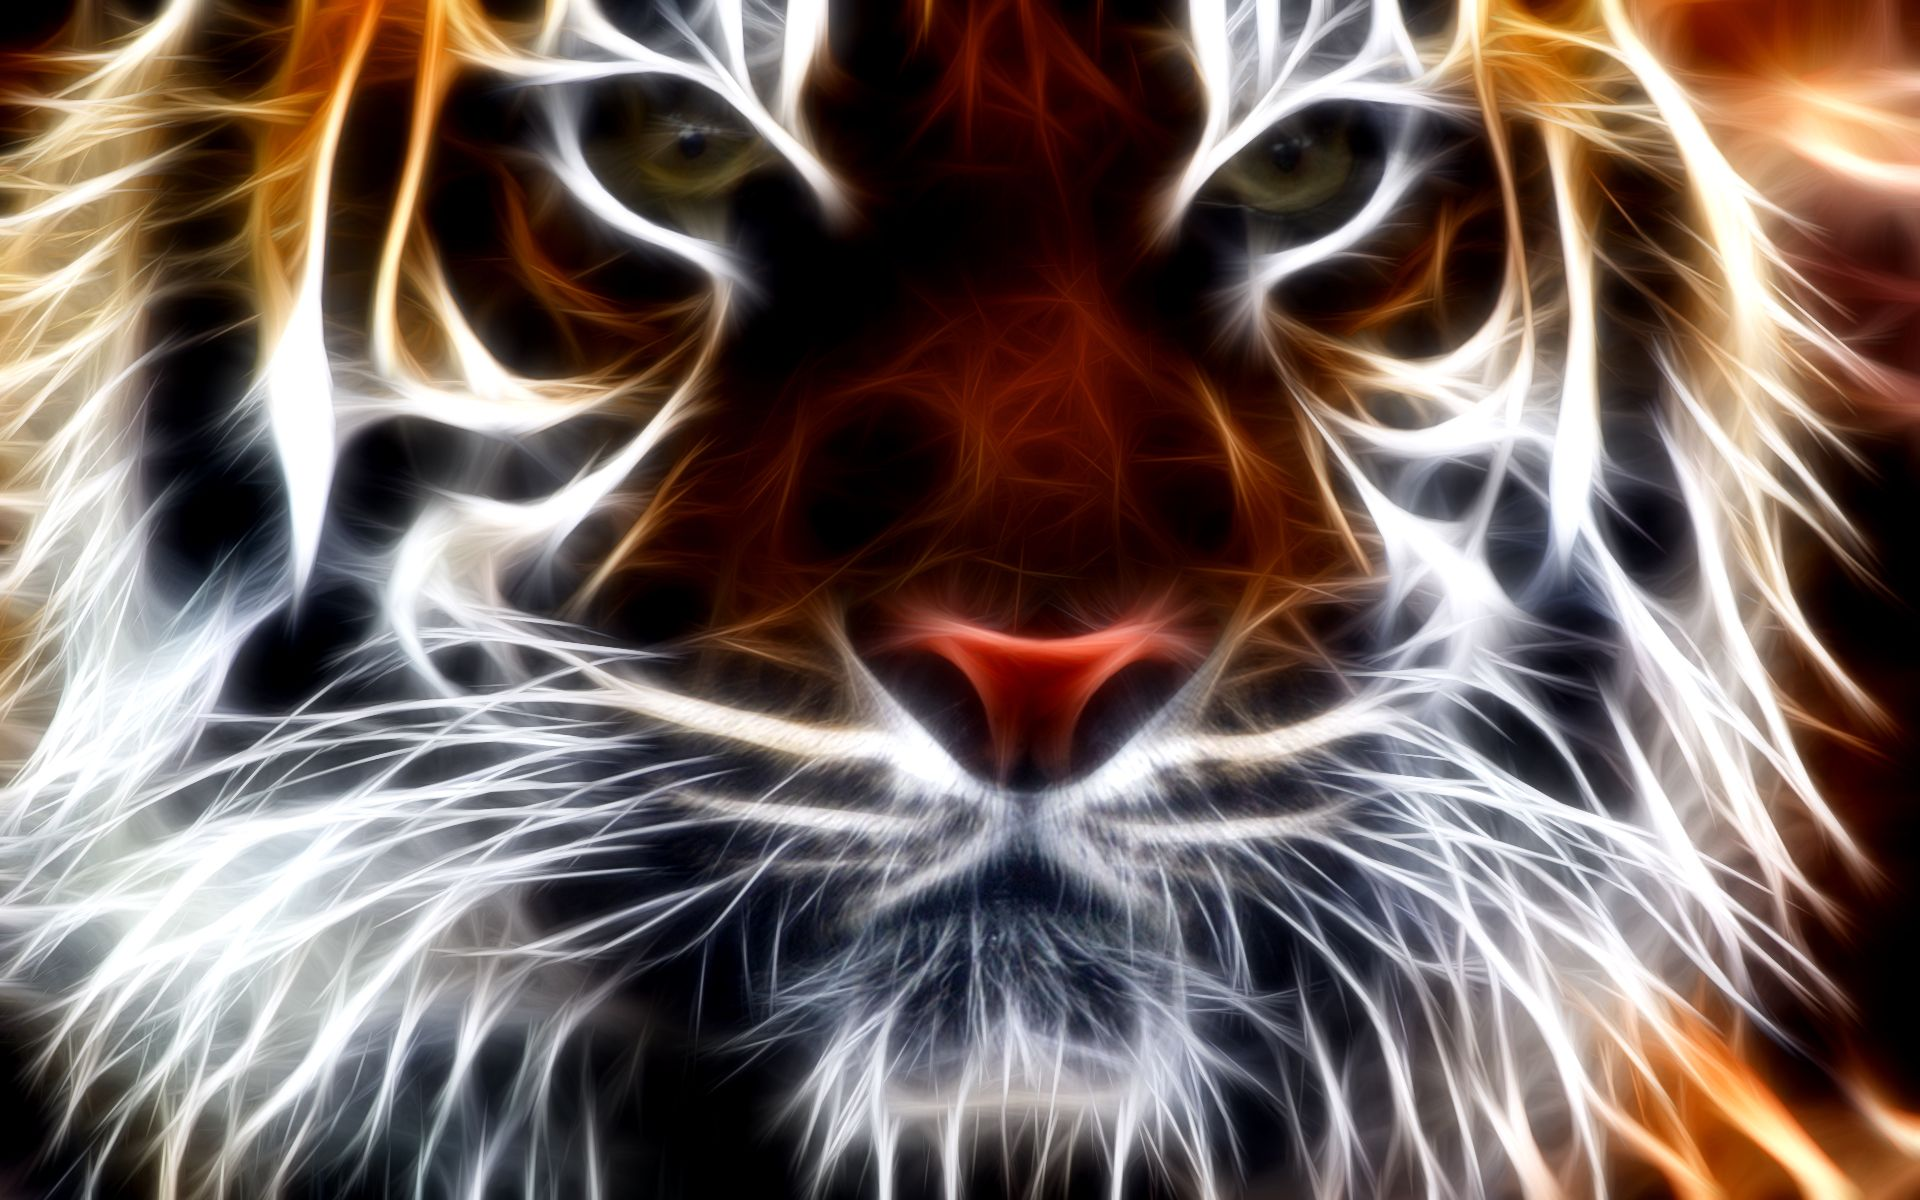 Tiger fractal wallpaper free tigers pinterest fractals and digital art tiger fractal wallpaper free altavistaventures Choice Image